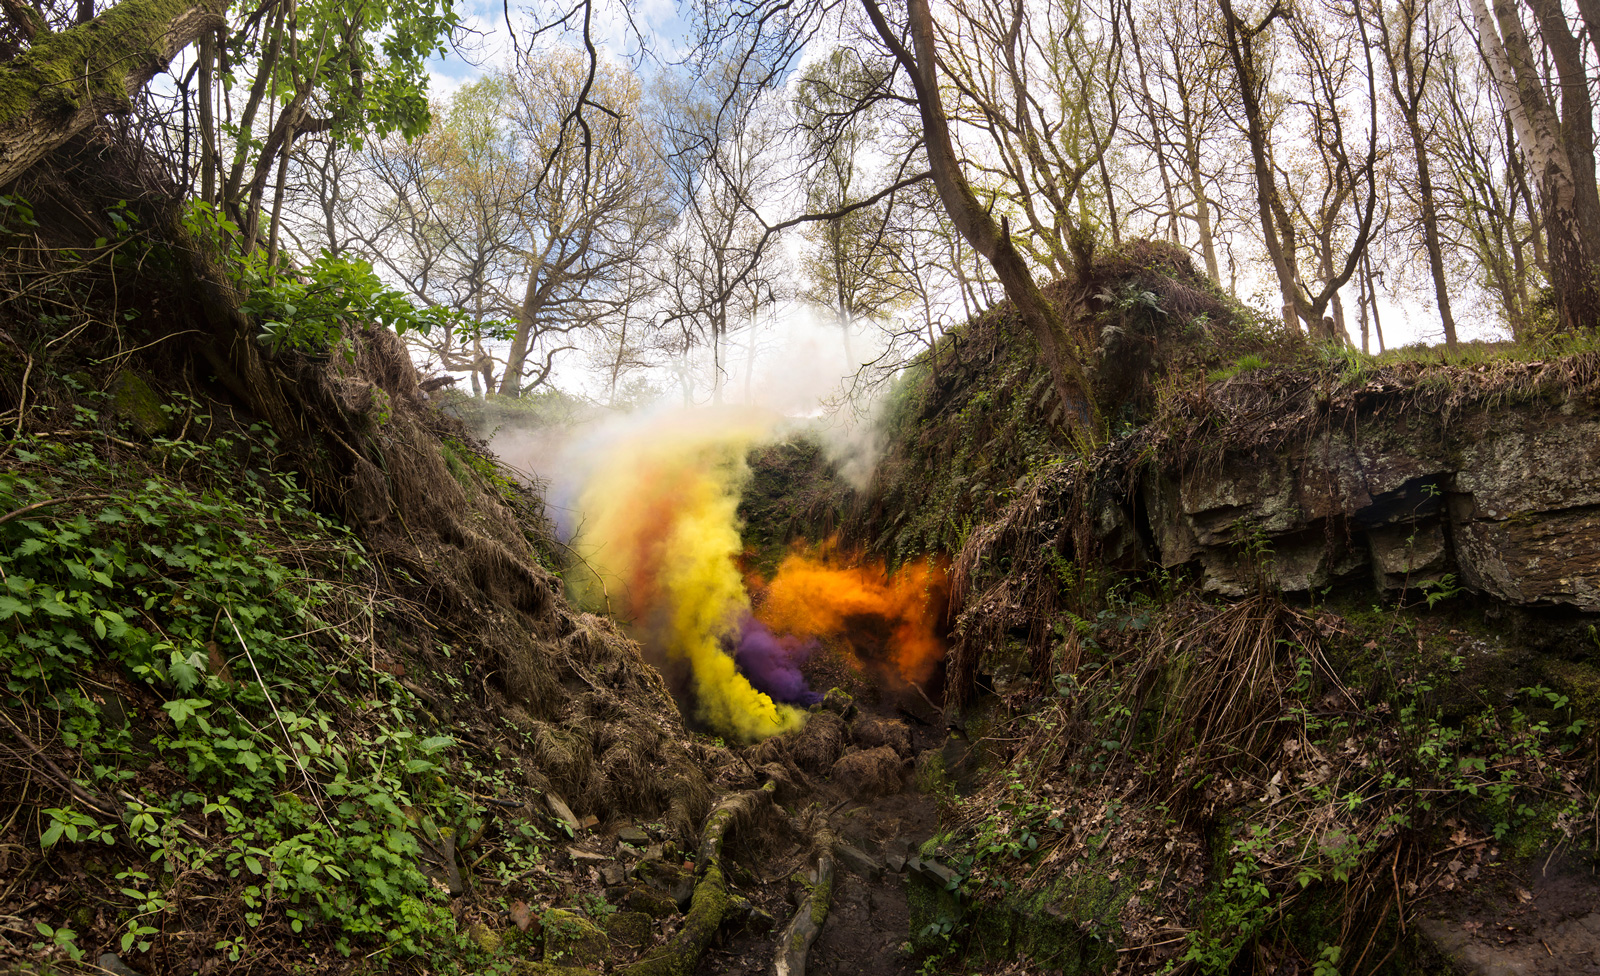 Smog No.1 | David Ogle, 2015 | multi-coloured smoke pyrotechnics | landscape installation (photograph) | part of Loomings: produced by: Mark Devereux Projects, photography by: Andrew Brooks | image: courtesy of the artist